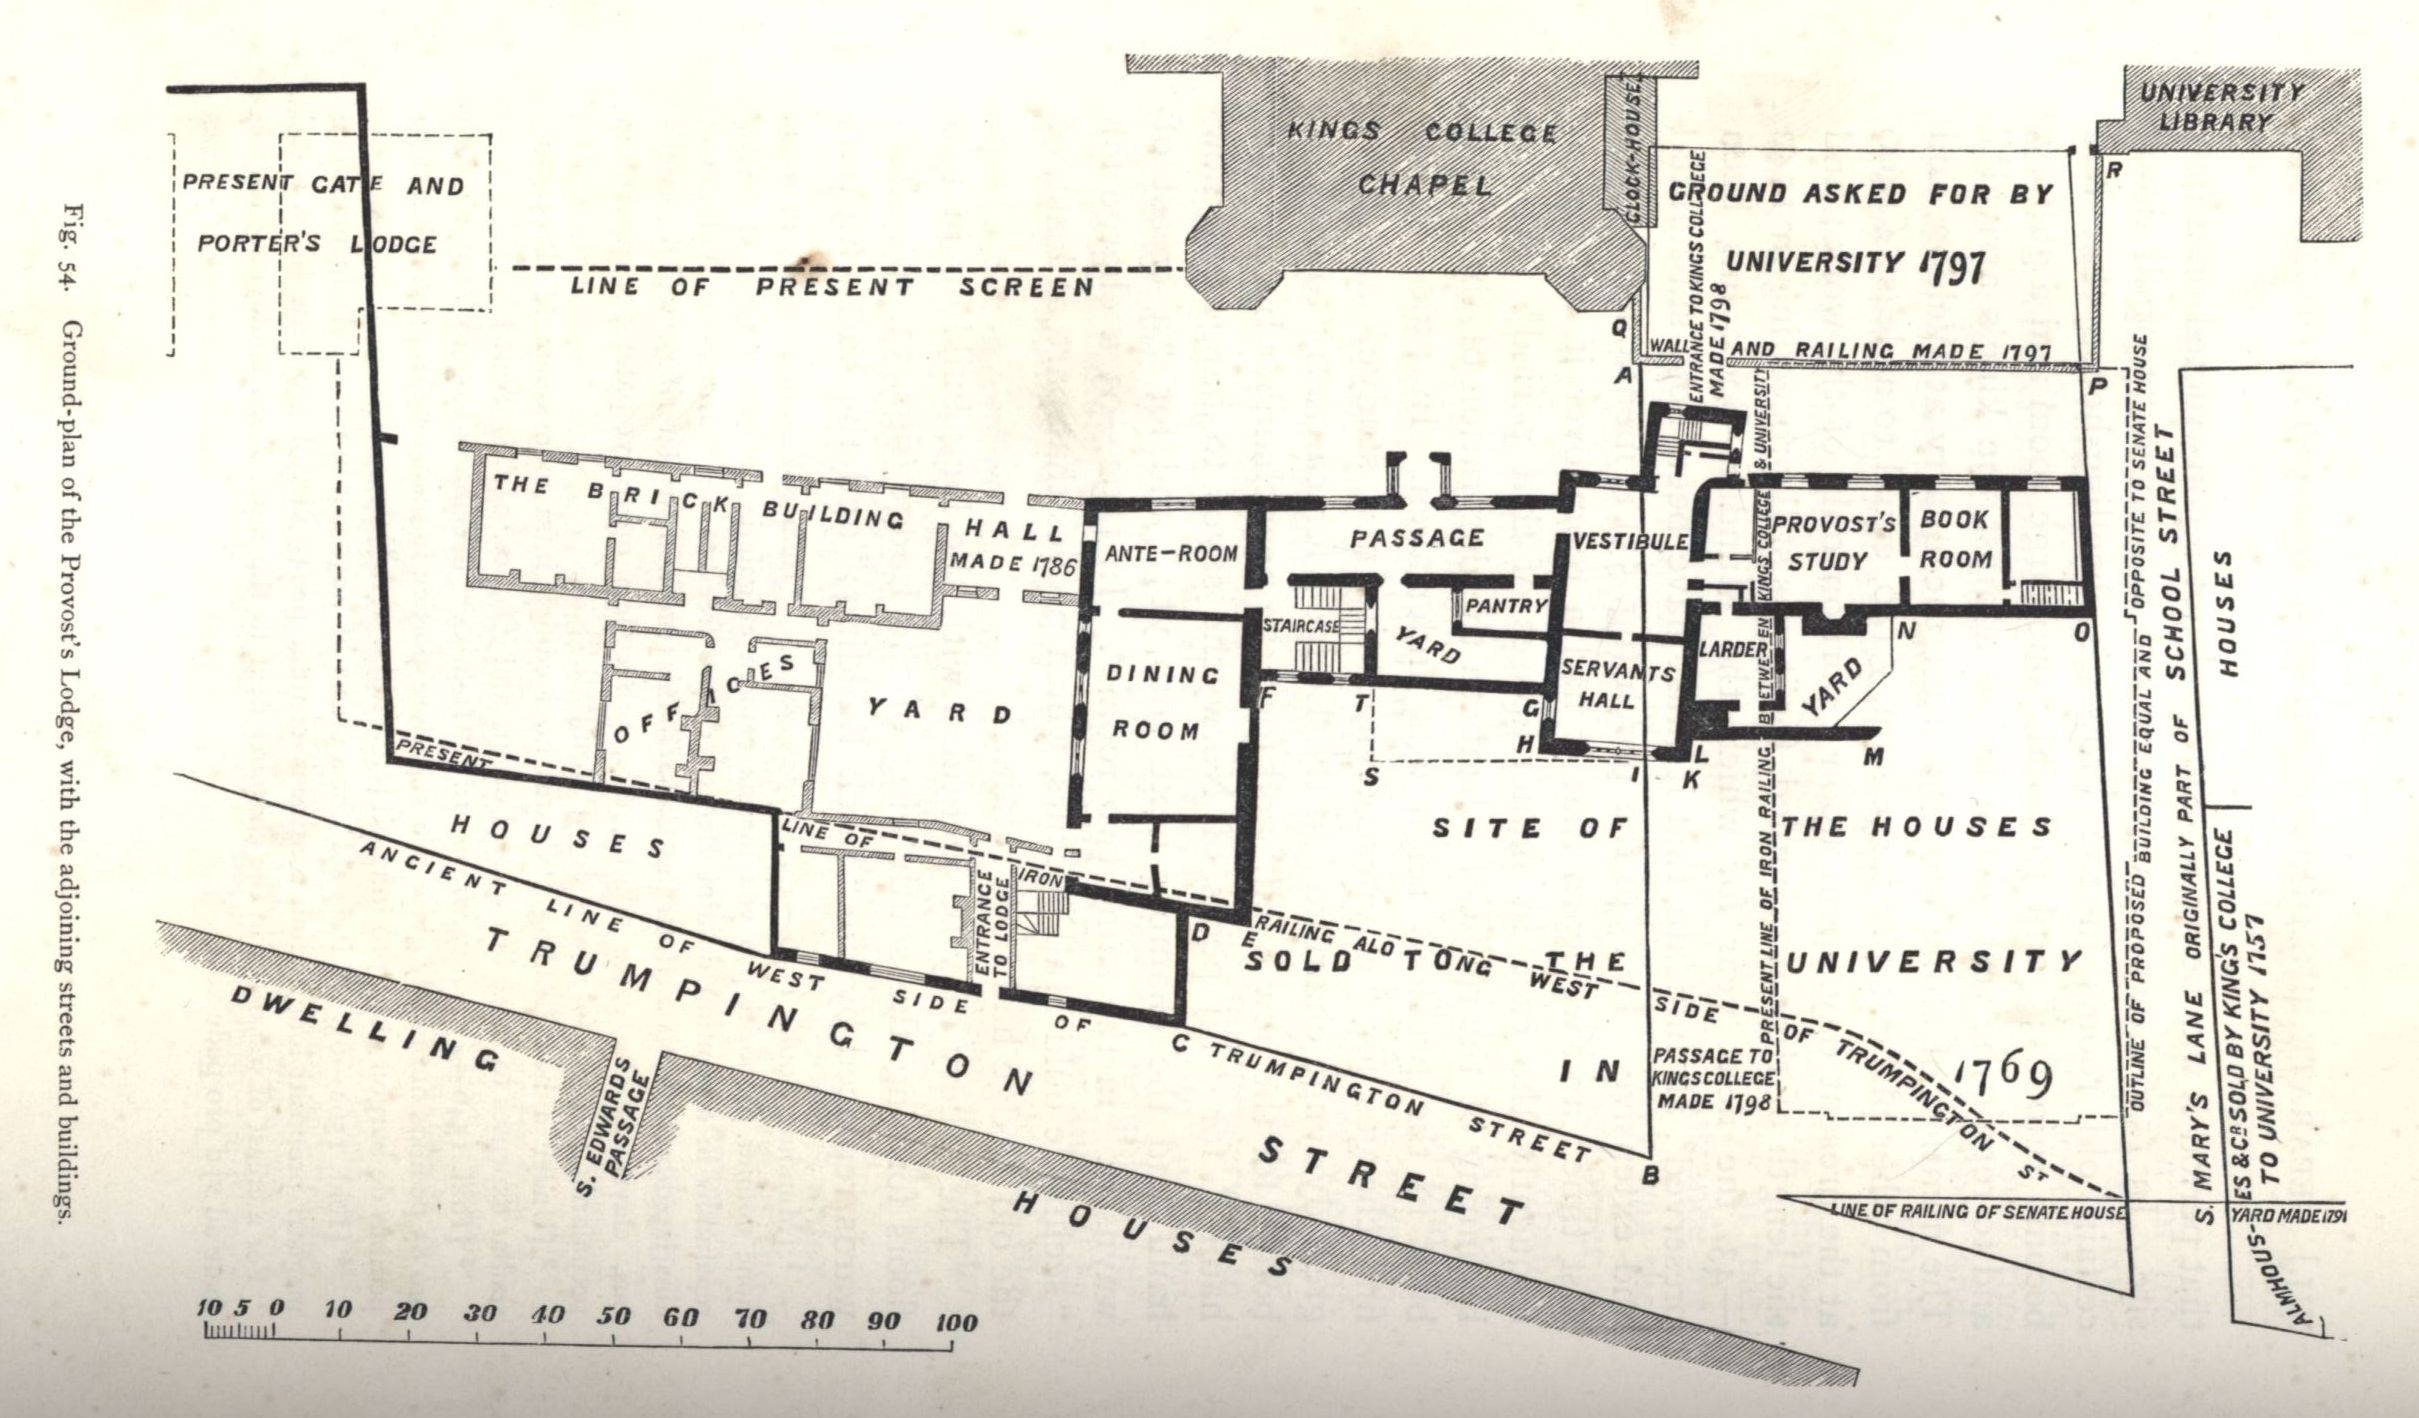 Plan showing the position of the former Provost's Lodge and other buildings, with sale details and location of present screen. [Willis and Clark, vol. 1, p. 544, fig. 54]